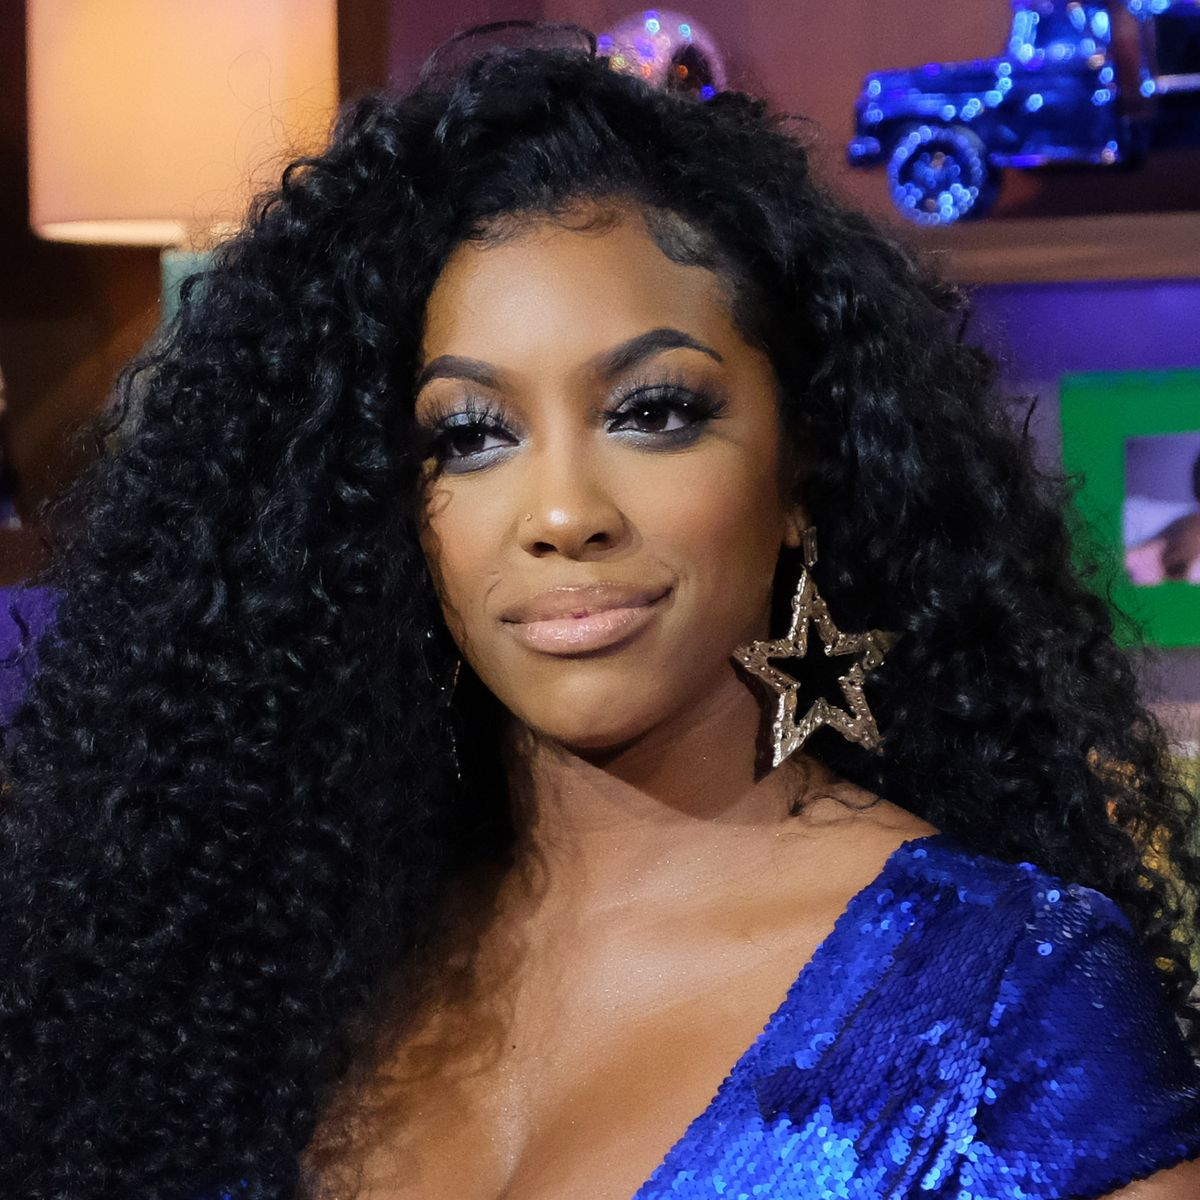 Porsha Williams Drops Terrible News And Fans Are Desperate